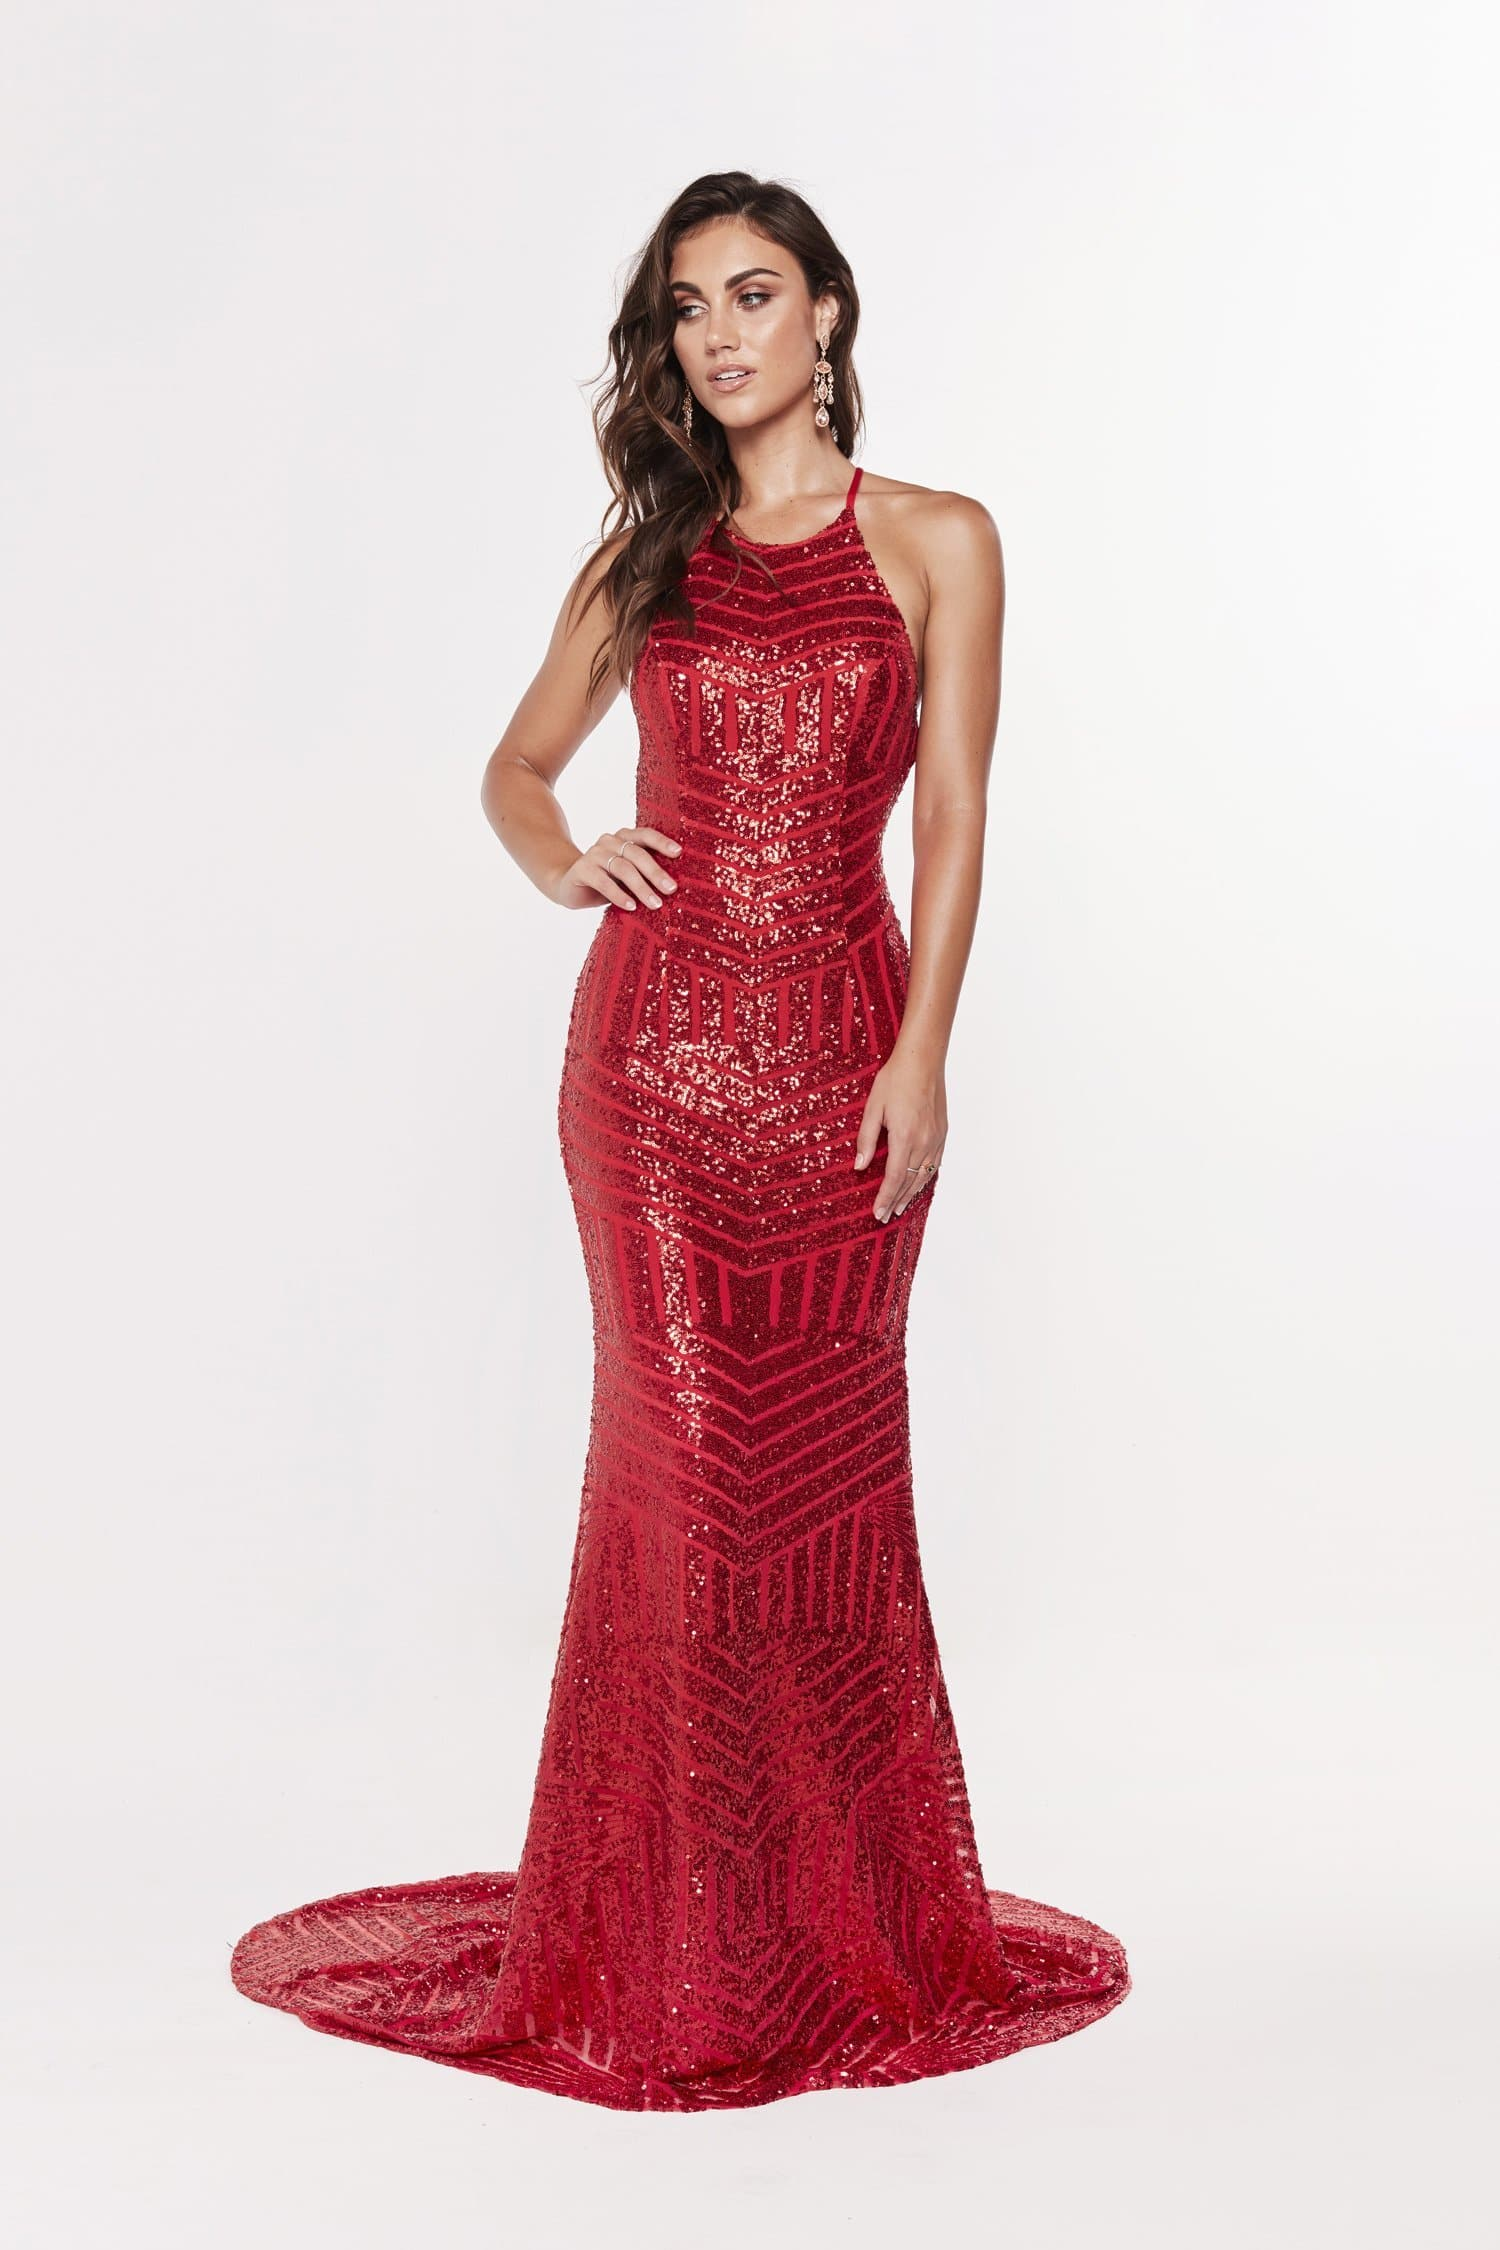 24b890c6 A&N Aniya- Lace Up Red Sequin Gown with a Mermaid Train – A&N Luxe Label